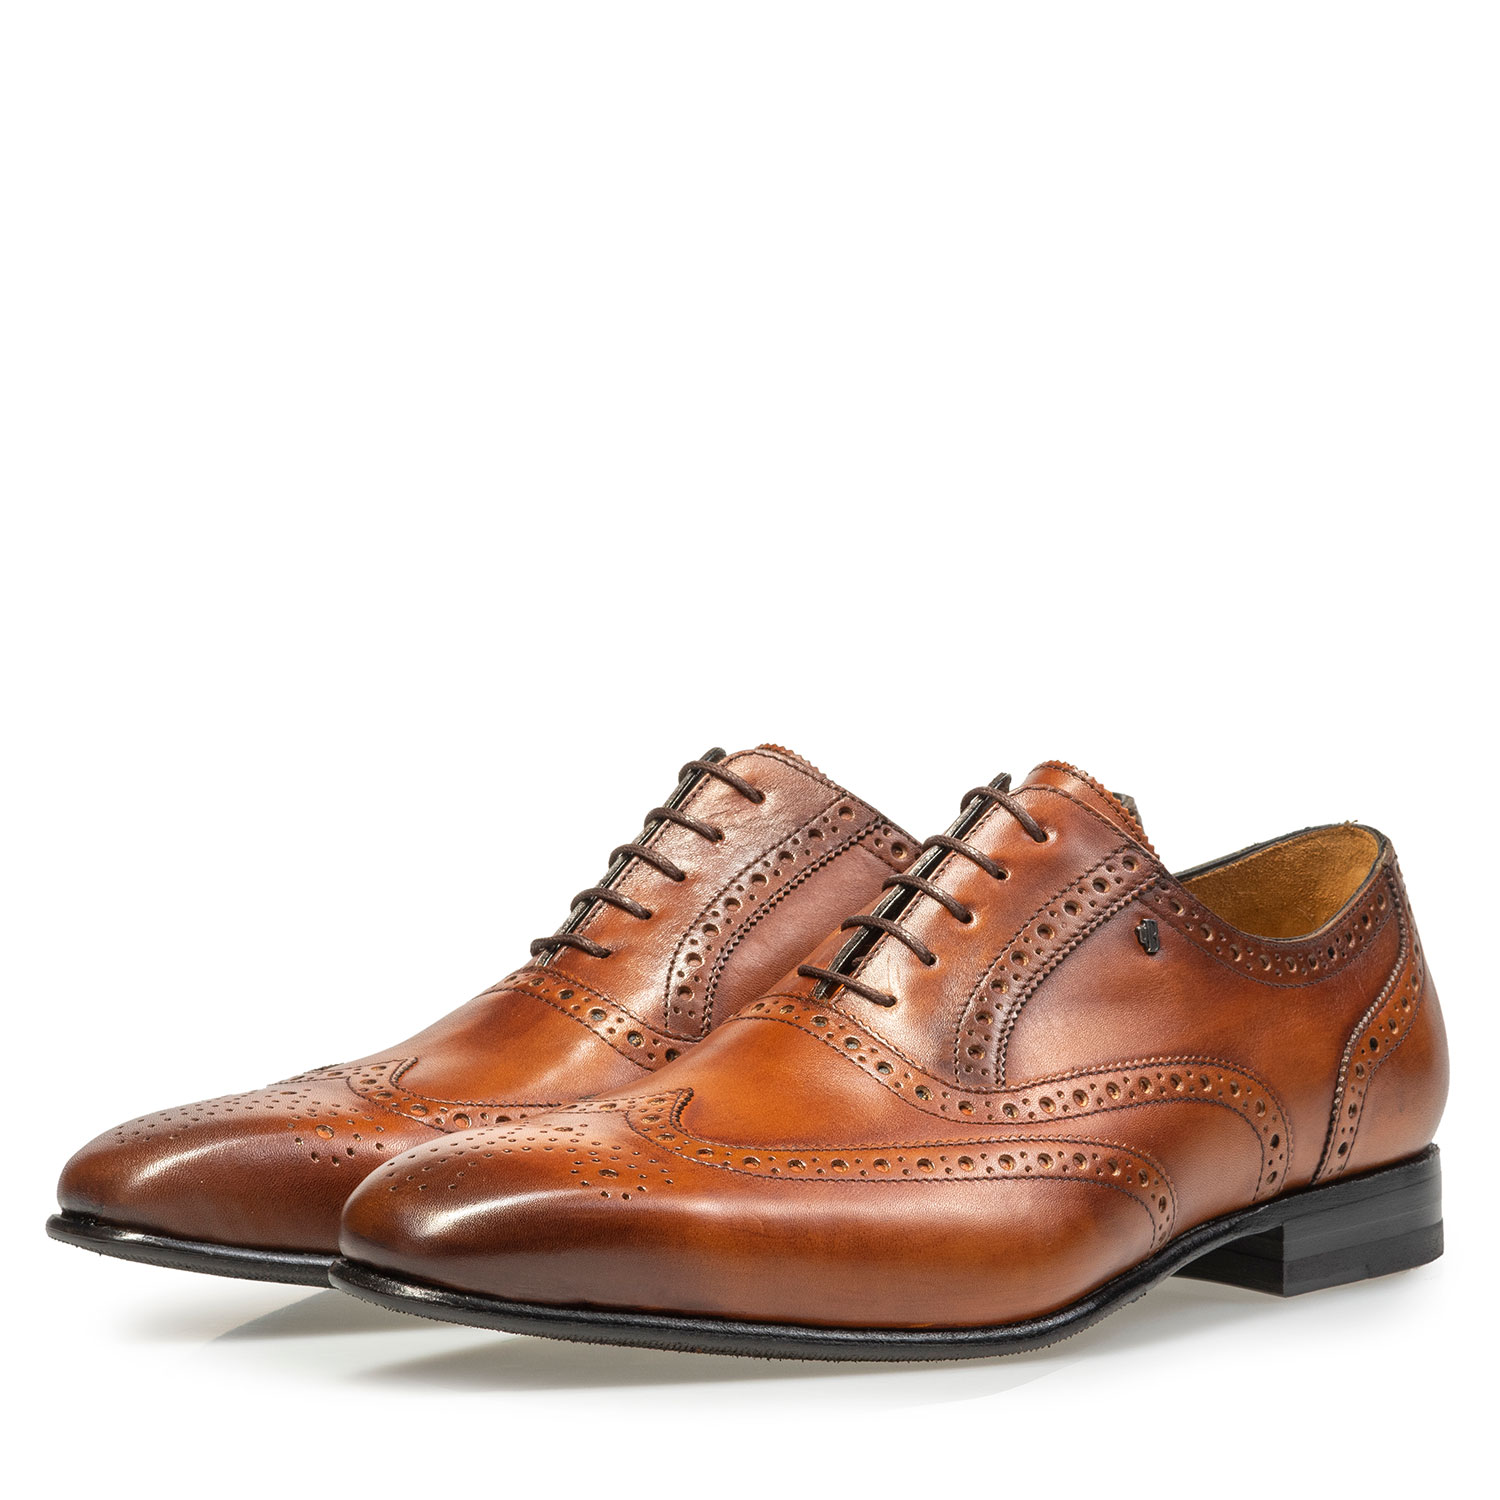 19295/03 - Dark cognac-coloured calf leather brogue